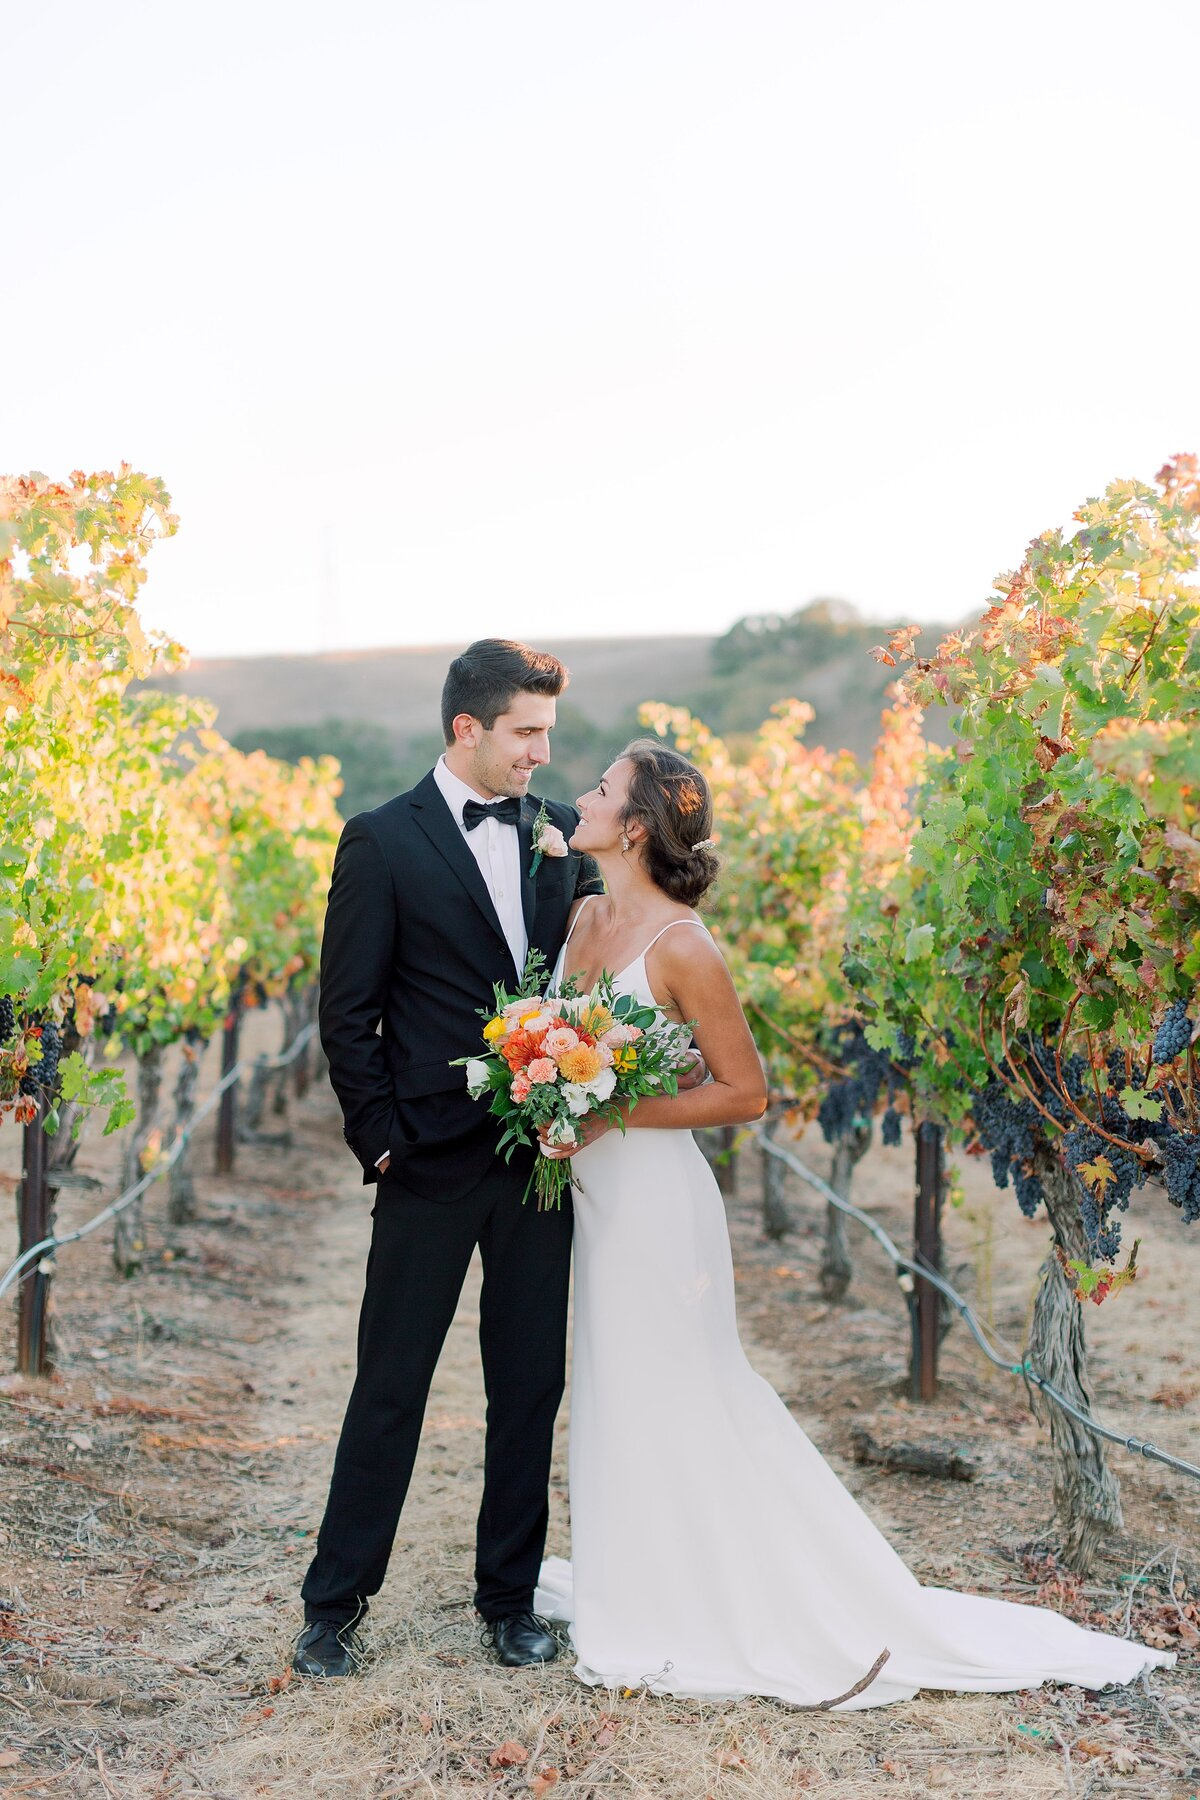 20191020 Modern Elegance Wedding Styled Shoot at Three Steves Winery Livermore_Bethany Picone Photography-161_WEB